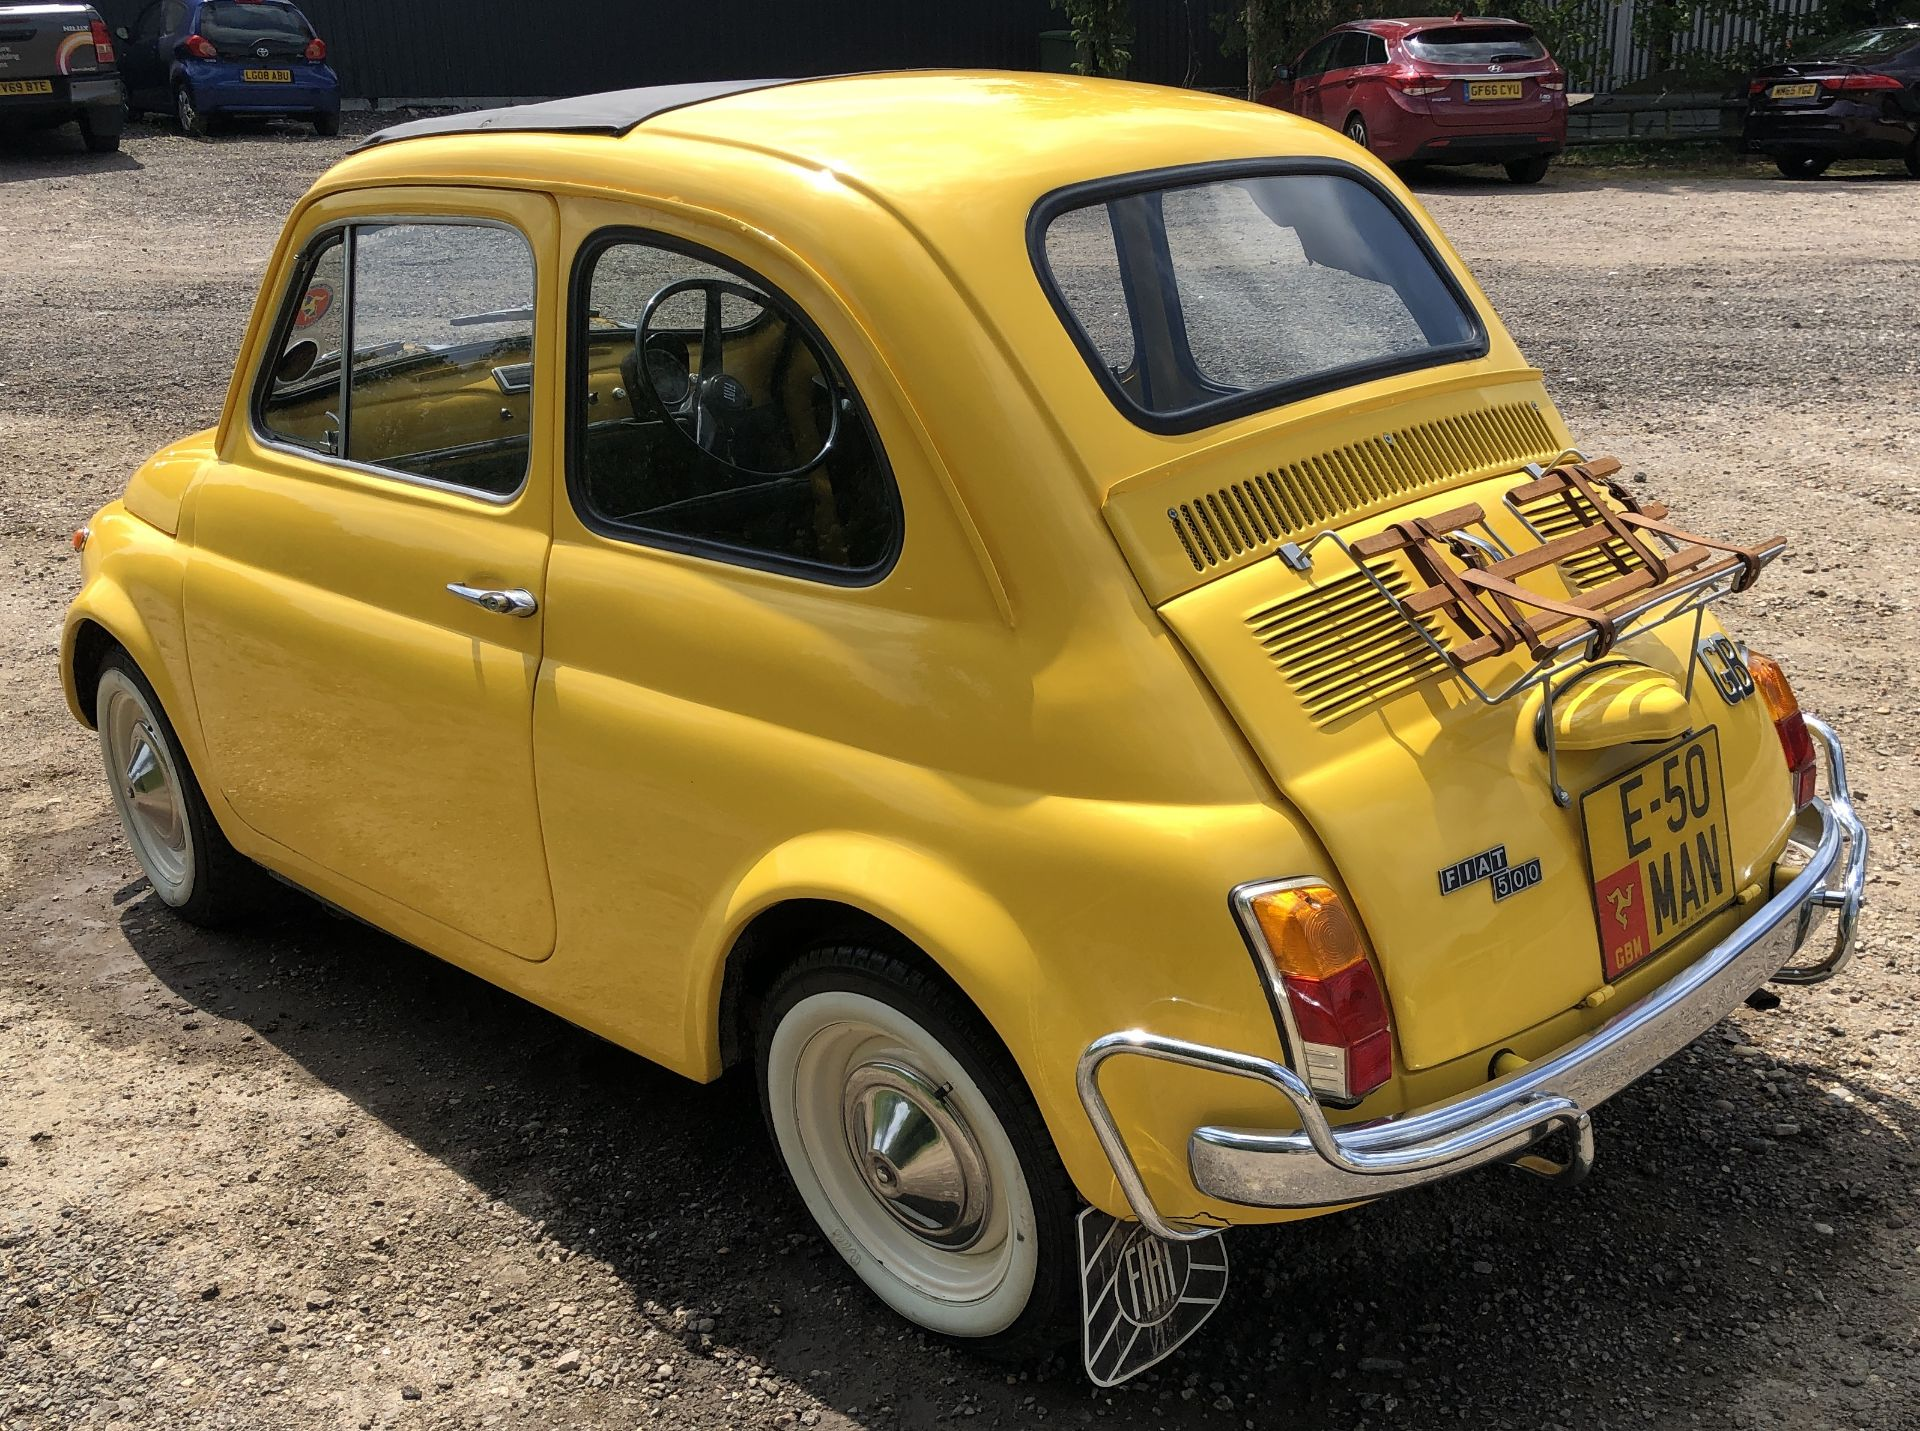 1972 Fiat 500 Saloon, Registration E-50-Man (IOM, Formally Registered as TGF 249L), First Registered - Image 6 of 34